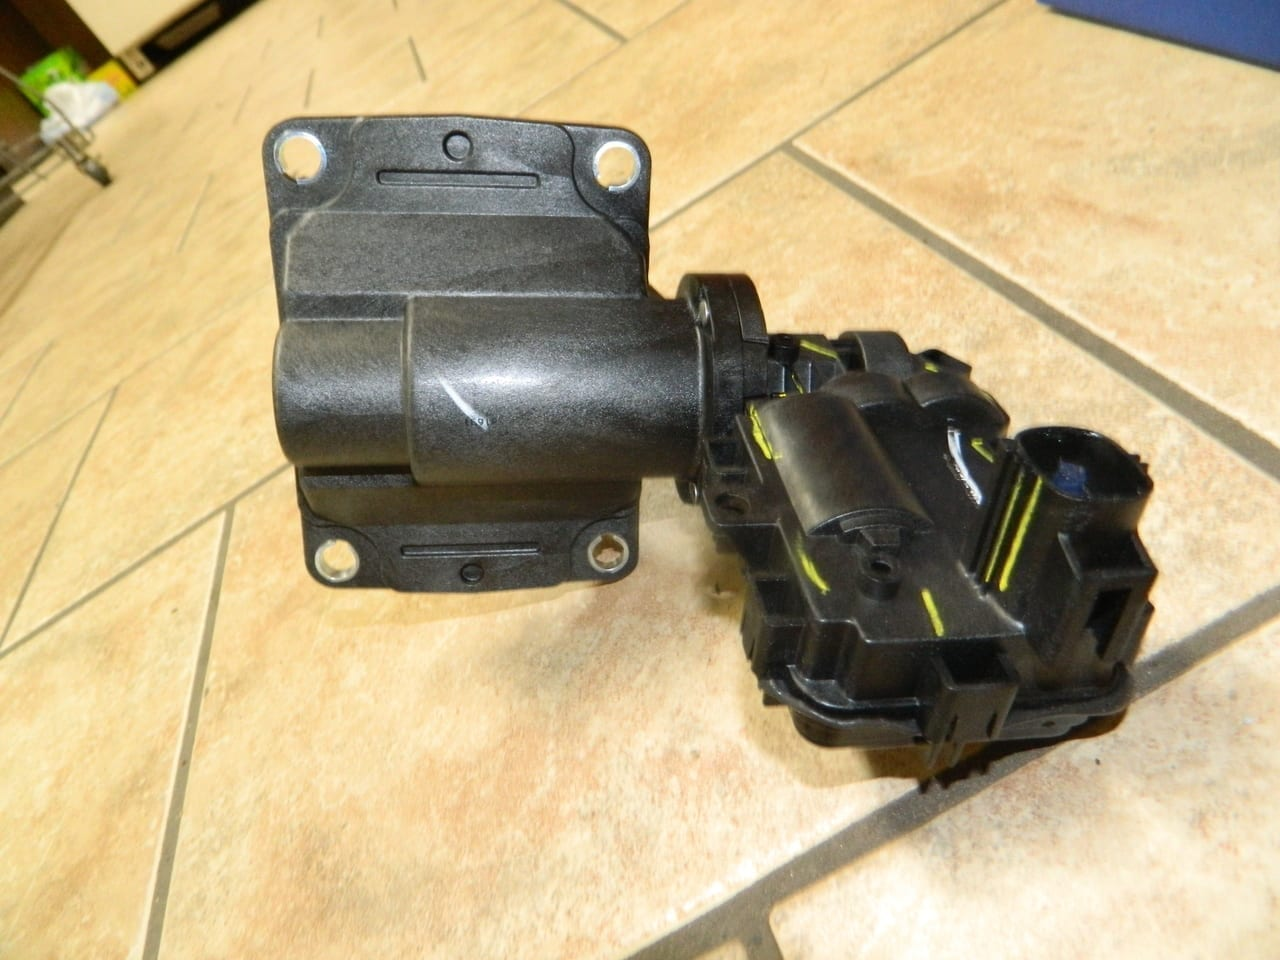 2014+ Dodge Ram 2500 3500 9.25  AAM 4X4 Front Axle Electric Disconnect Fork Assembly